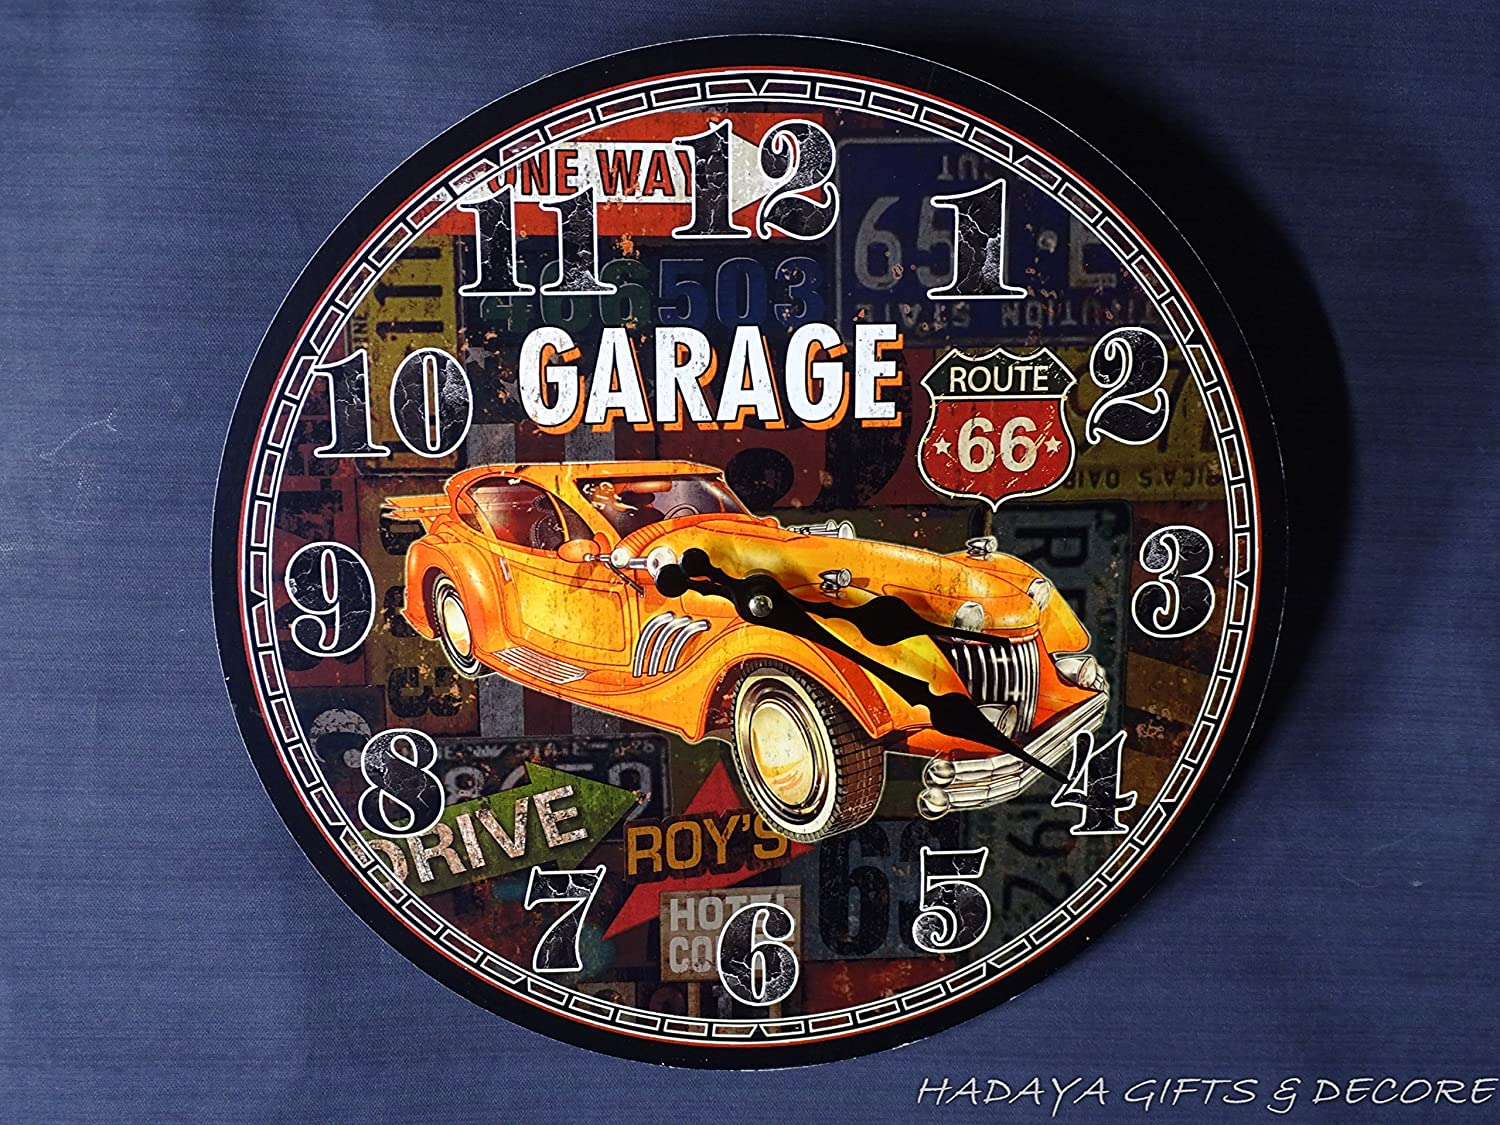 hadaaya gifts & home decor CAR Lovers Garage Themed Wall Clock, Shabby Chic, Perfect décor Item for a Man cave or a Garage